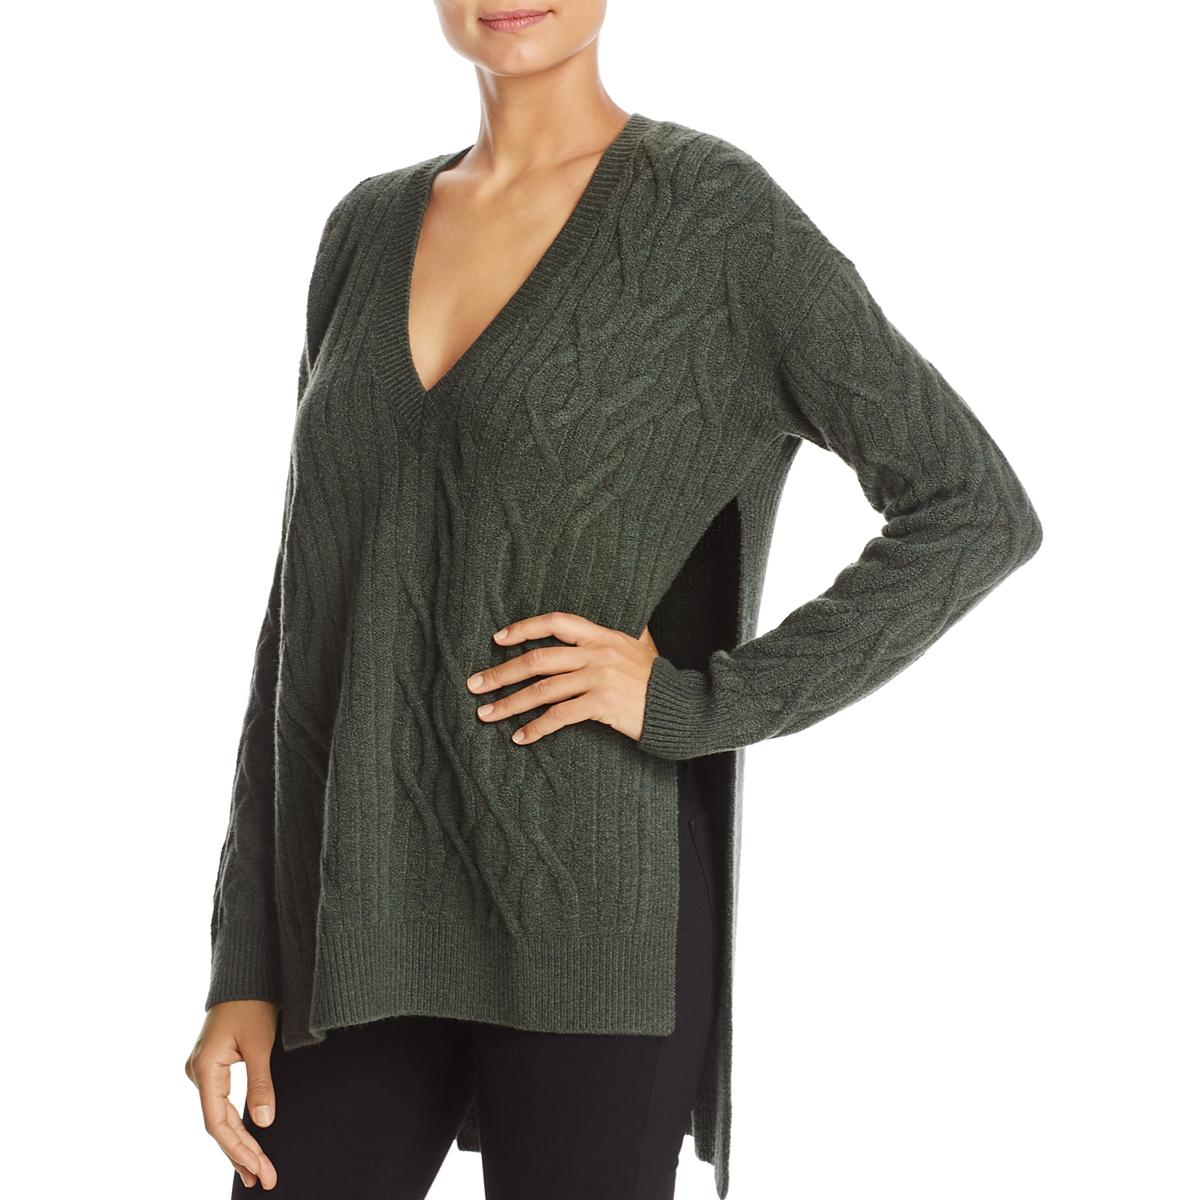 Kenneth Cole Womens Green Wool Cable Knit Pullover Sweater Top S ... 803dd3941